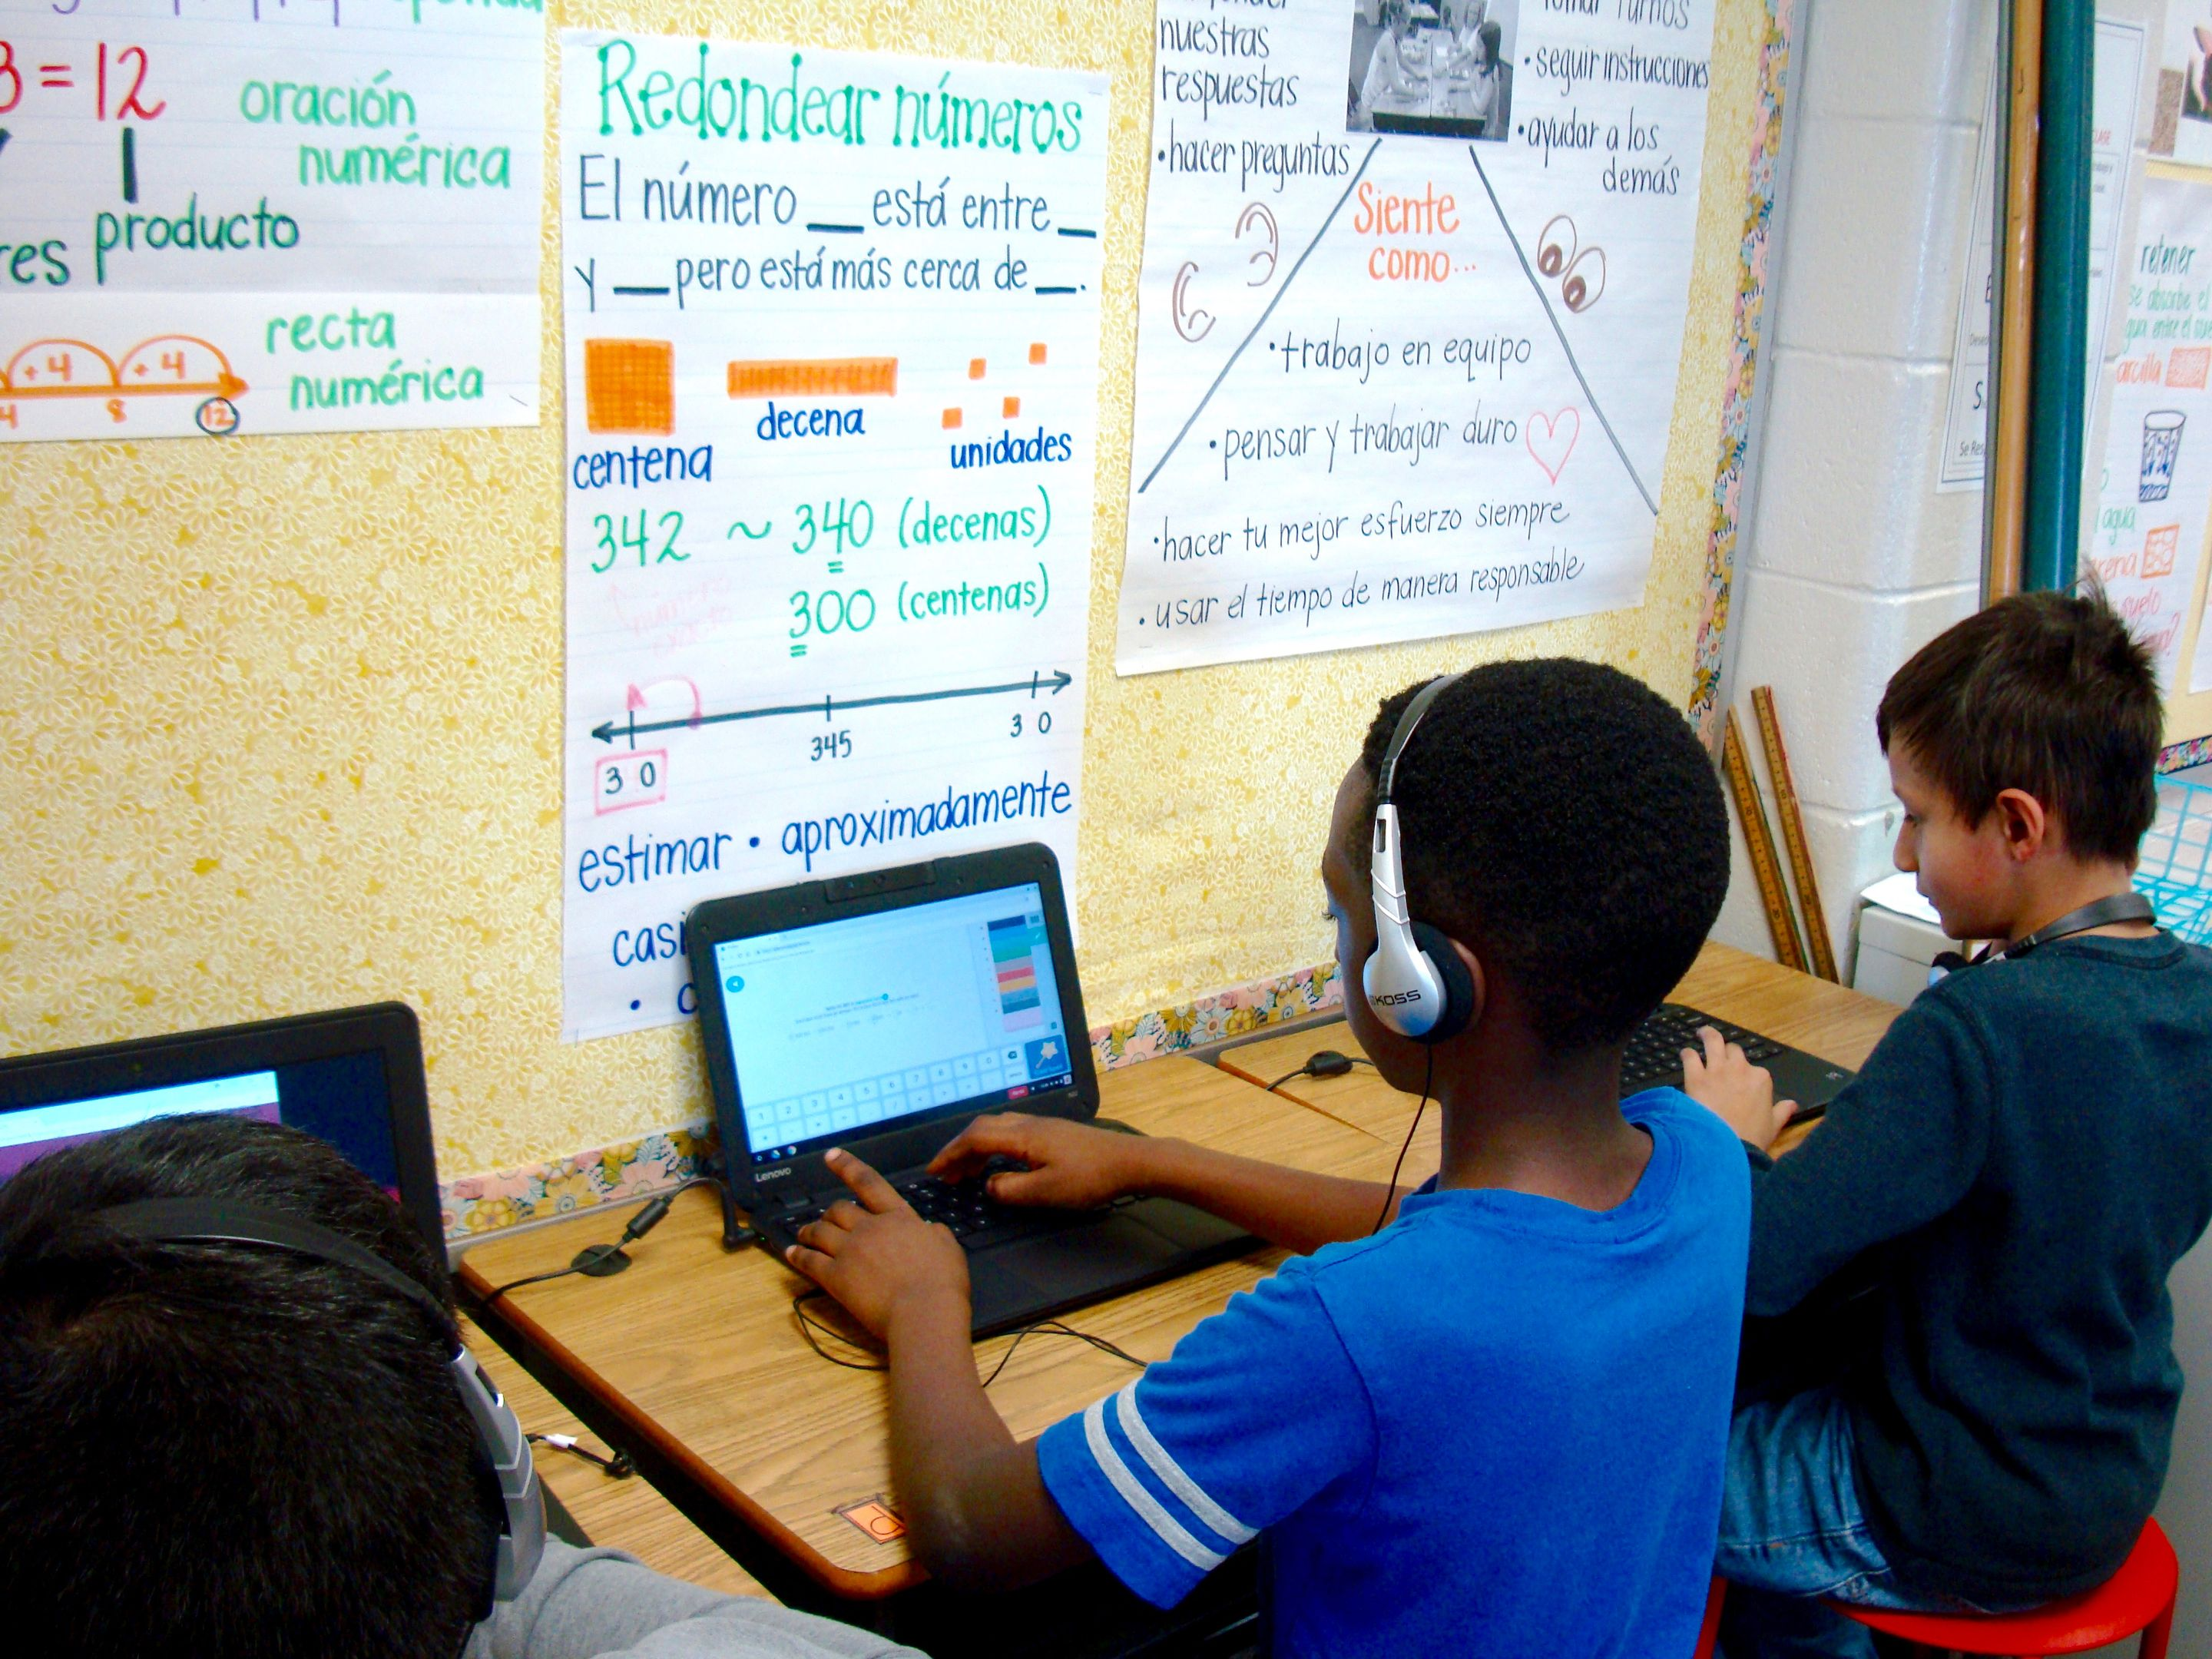 Students in the dual immersion program at Bethesda Elementary School work on a computer activity.